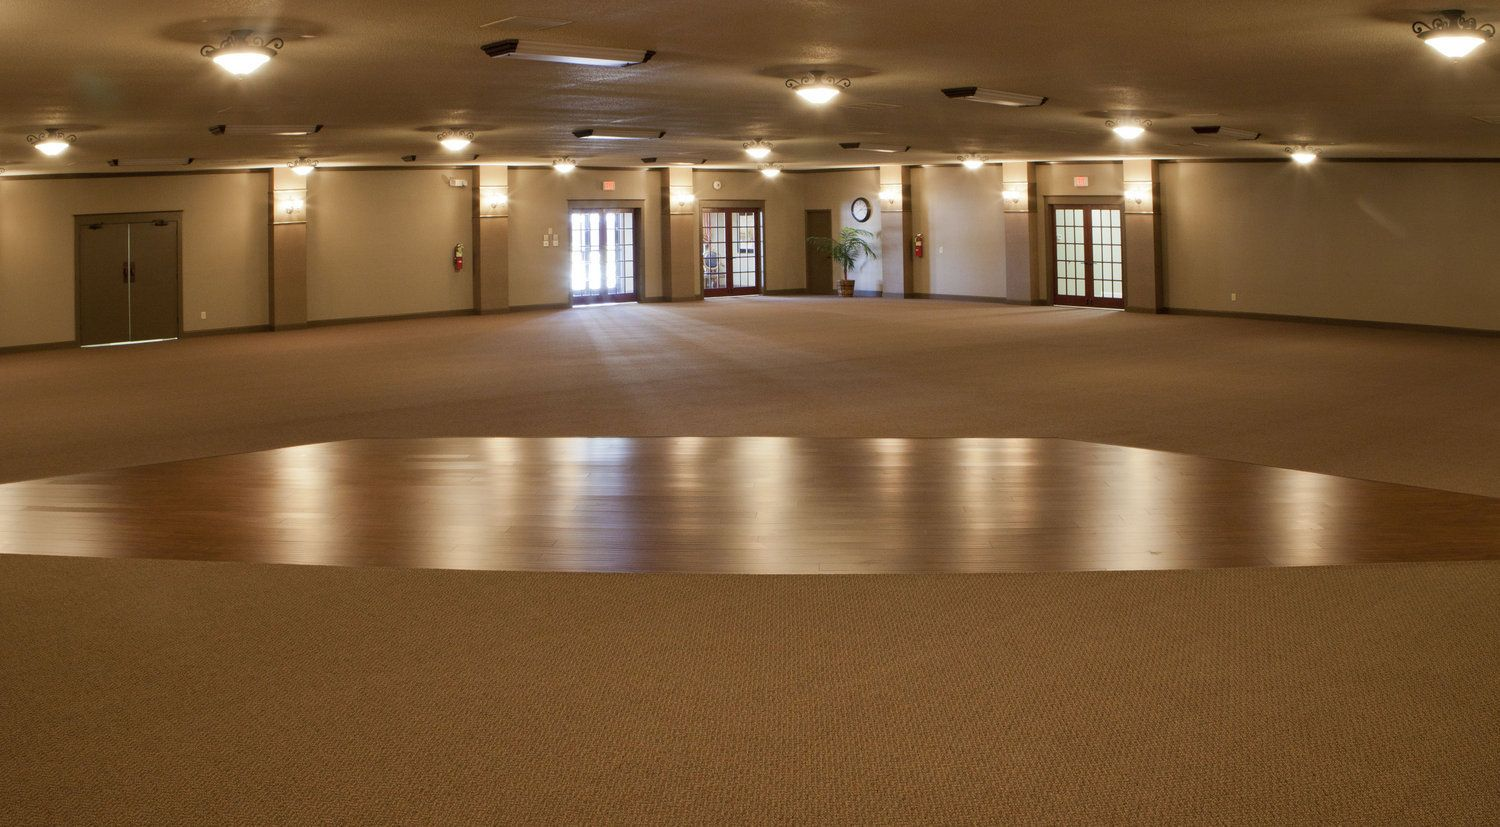 Vailtree Event Center, Graham, NC. This facility offers a